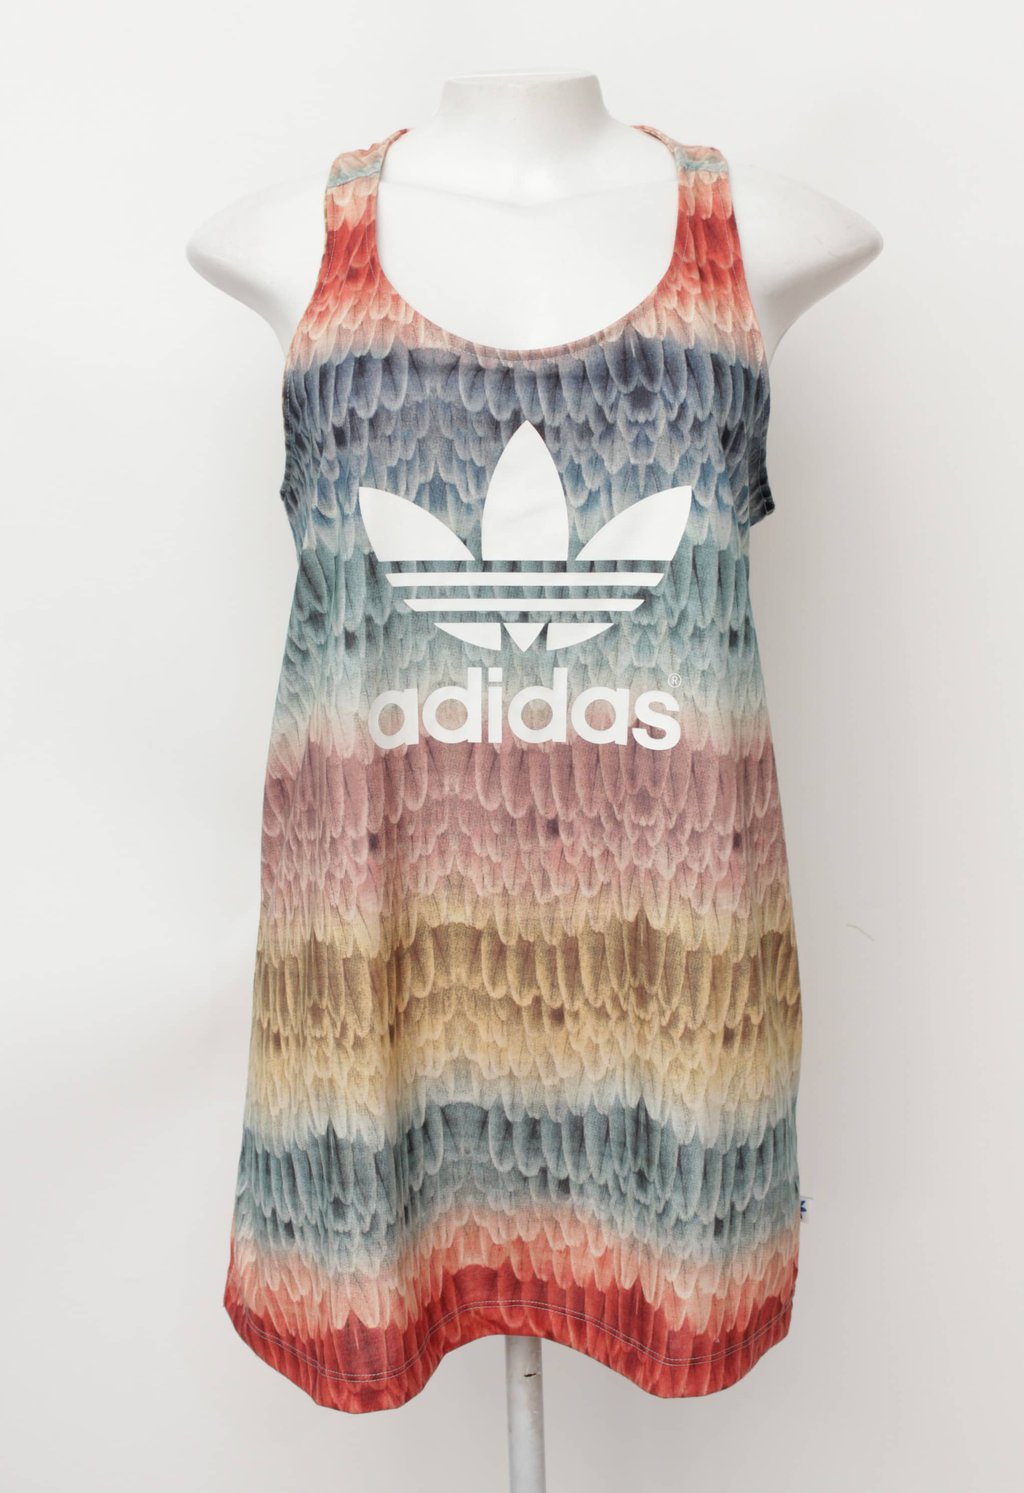 Regata Estampada Adidas